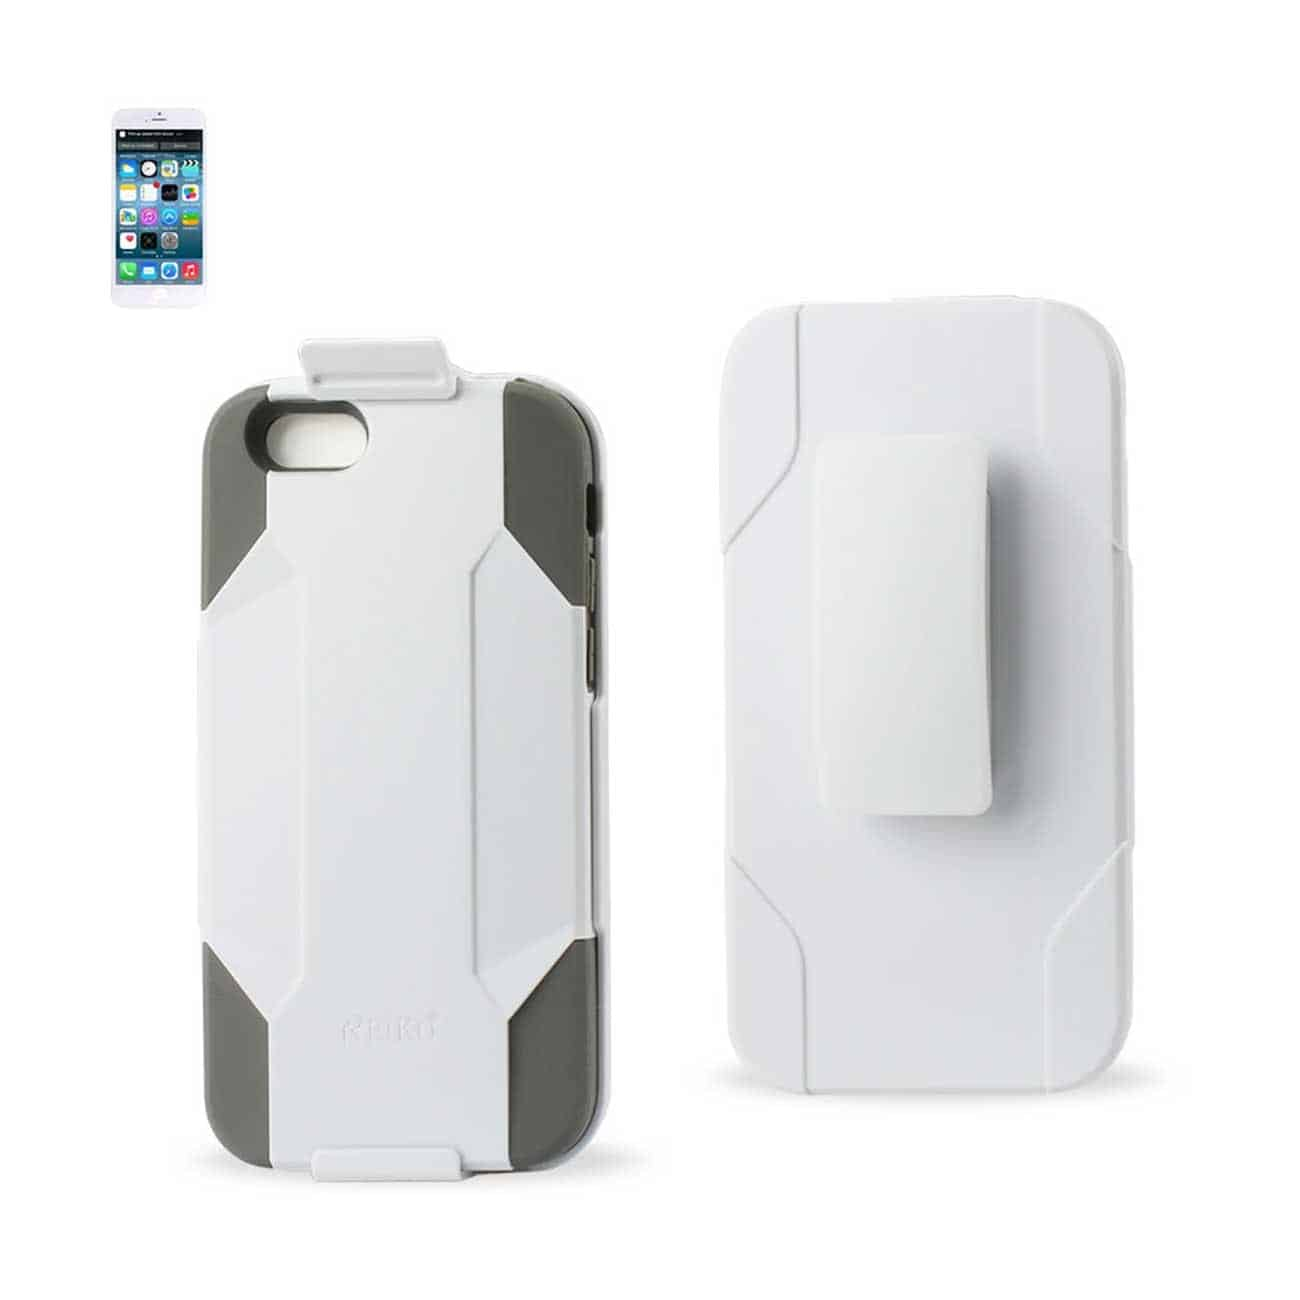 IPHONE 6 HYBRID HEAVY DUTY HOLSTER COMBO CASE IN GRAY WHITE